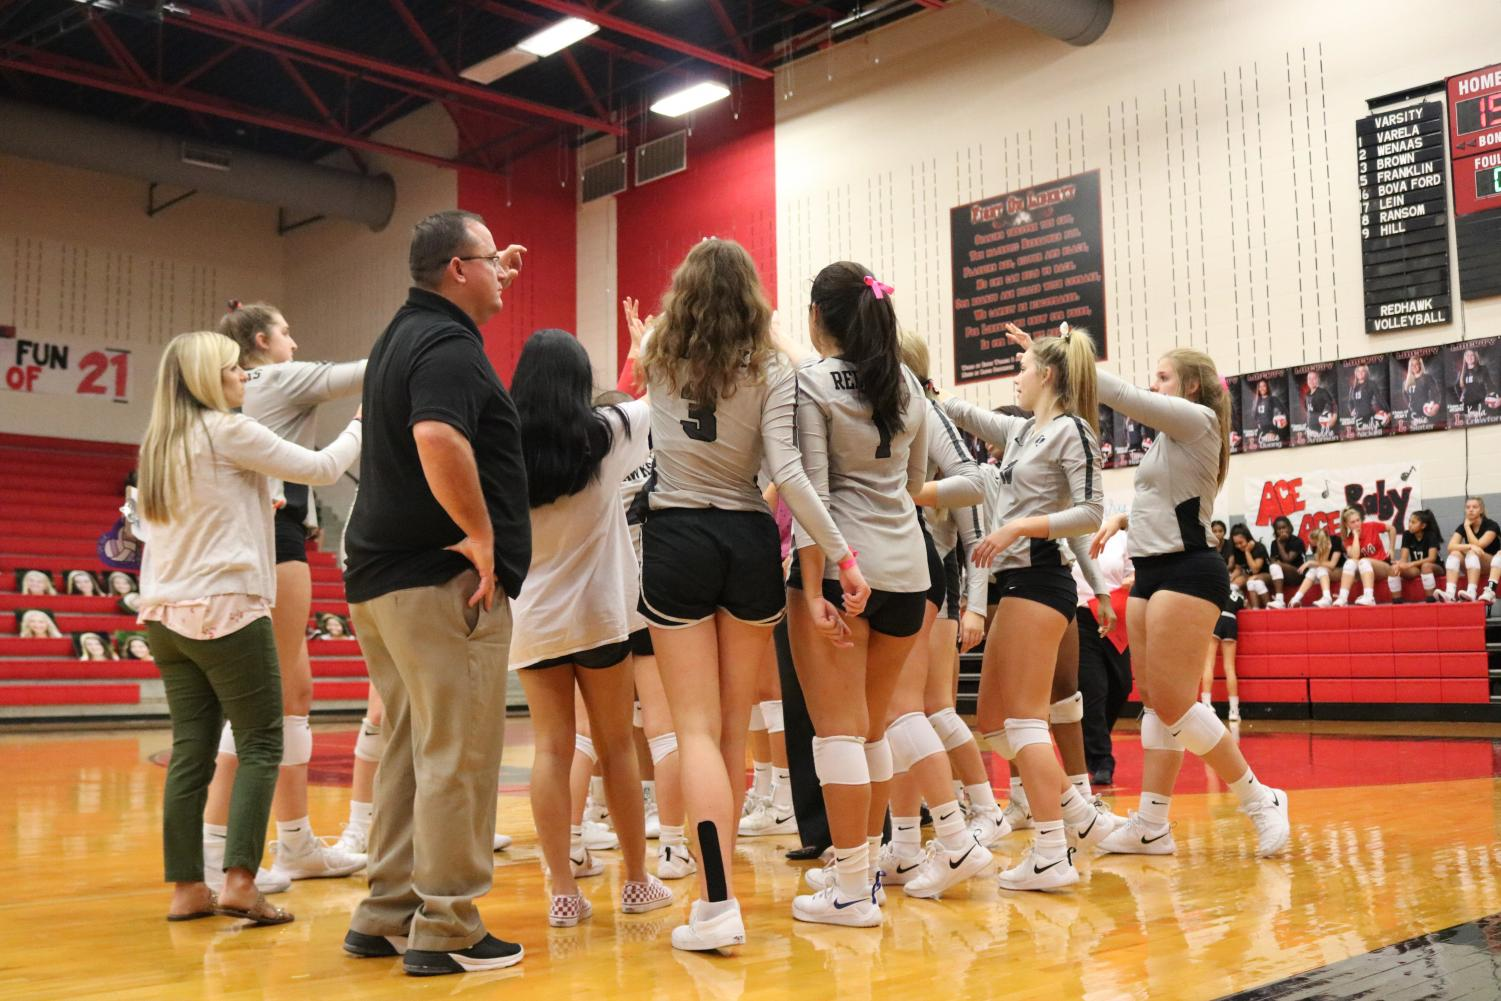 Redhawk volleyball players break out of a huddle at a home game. The team aims to keep their undefeated streak alive against the Titans at 6:30 p.m. at the Nest.